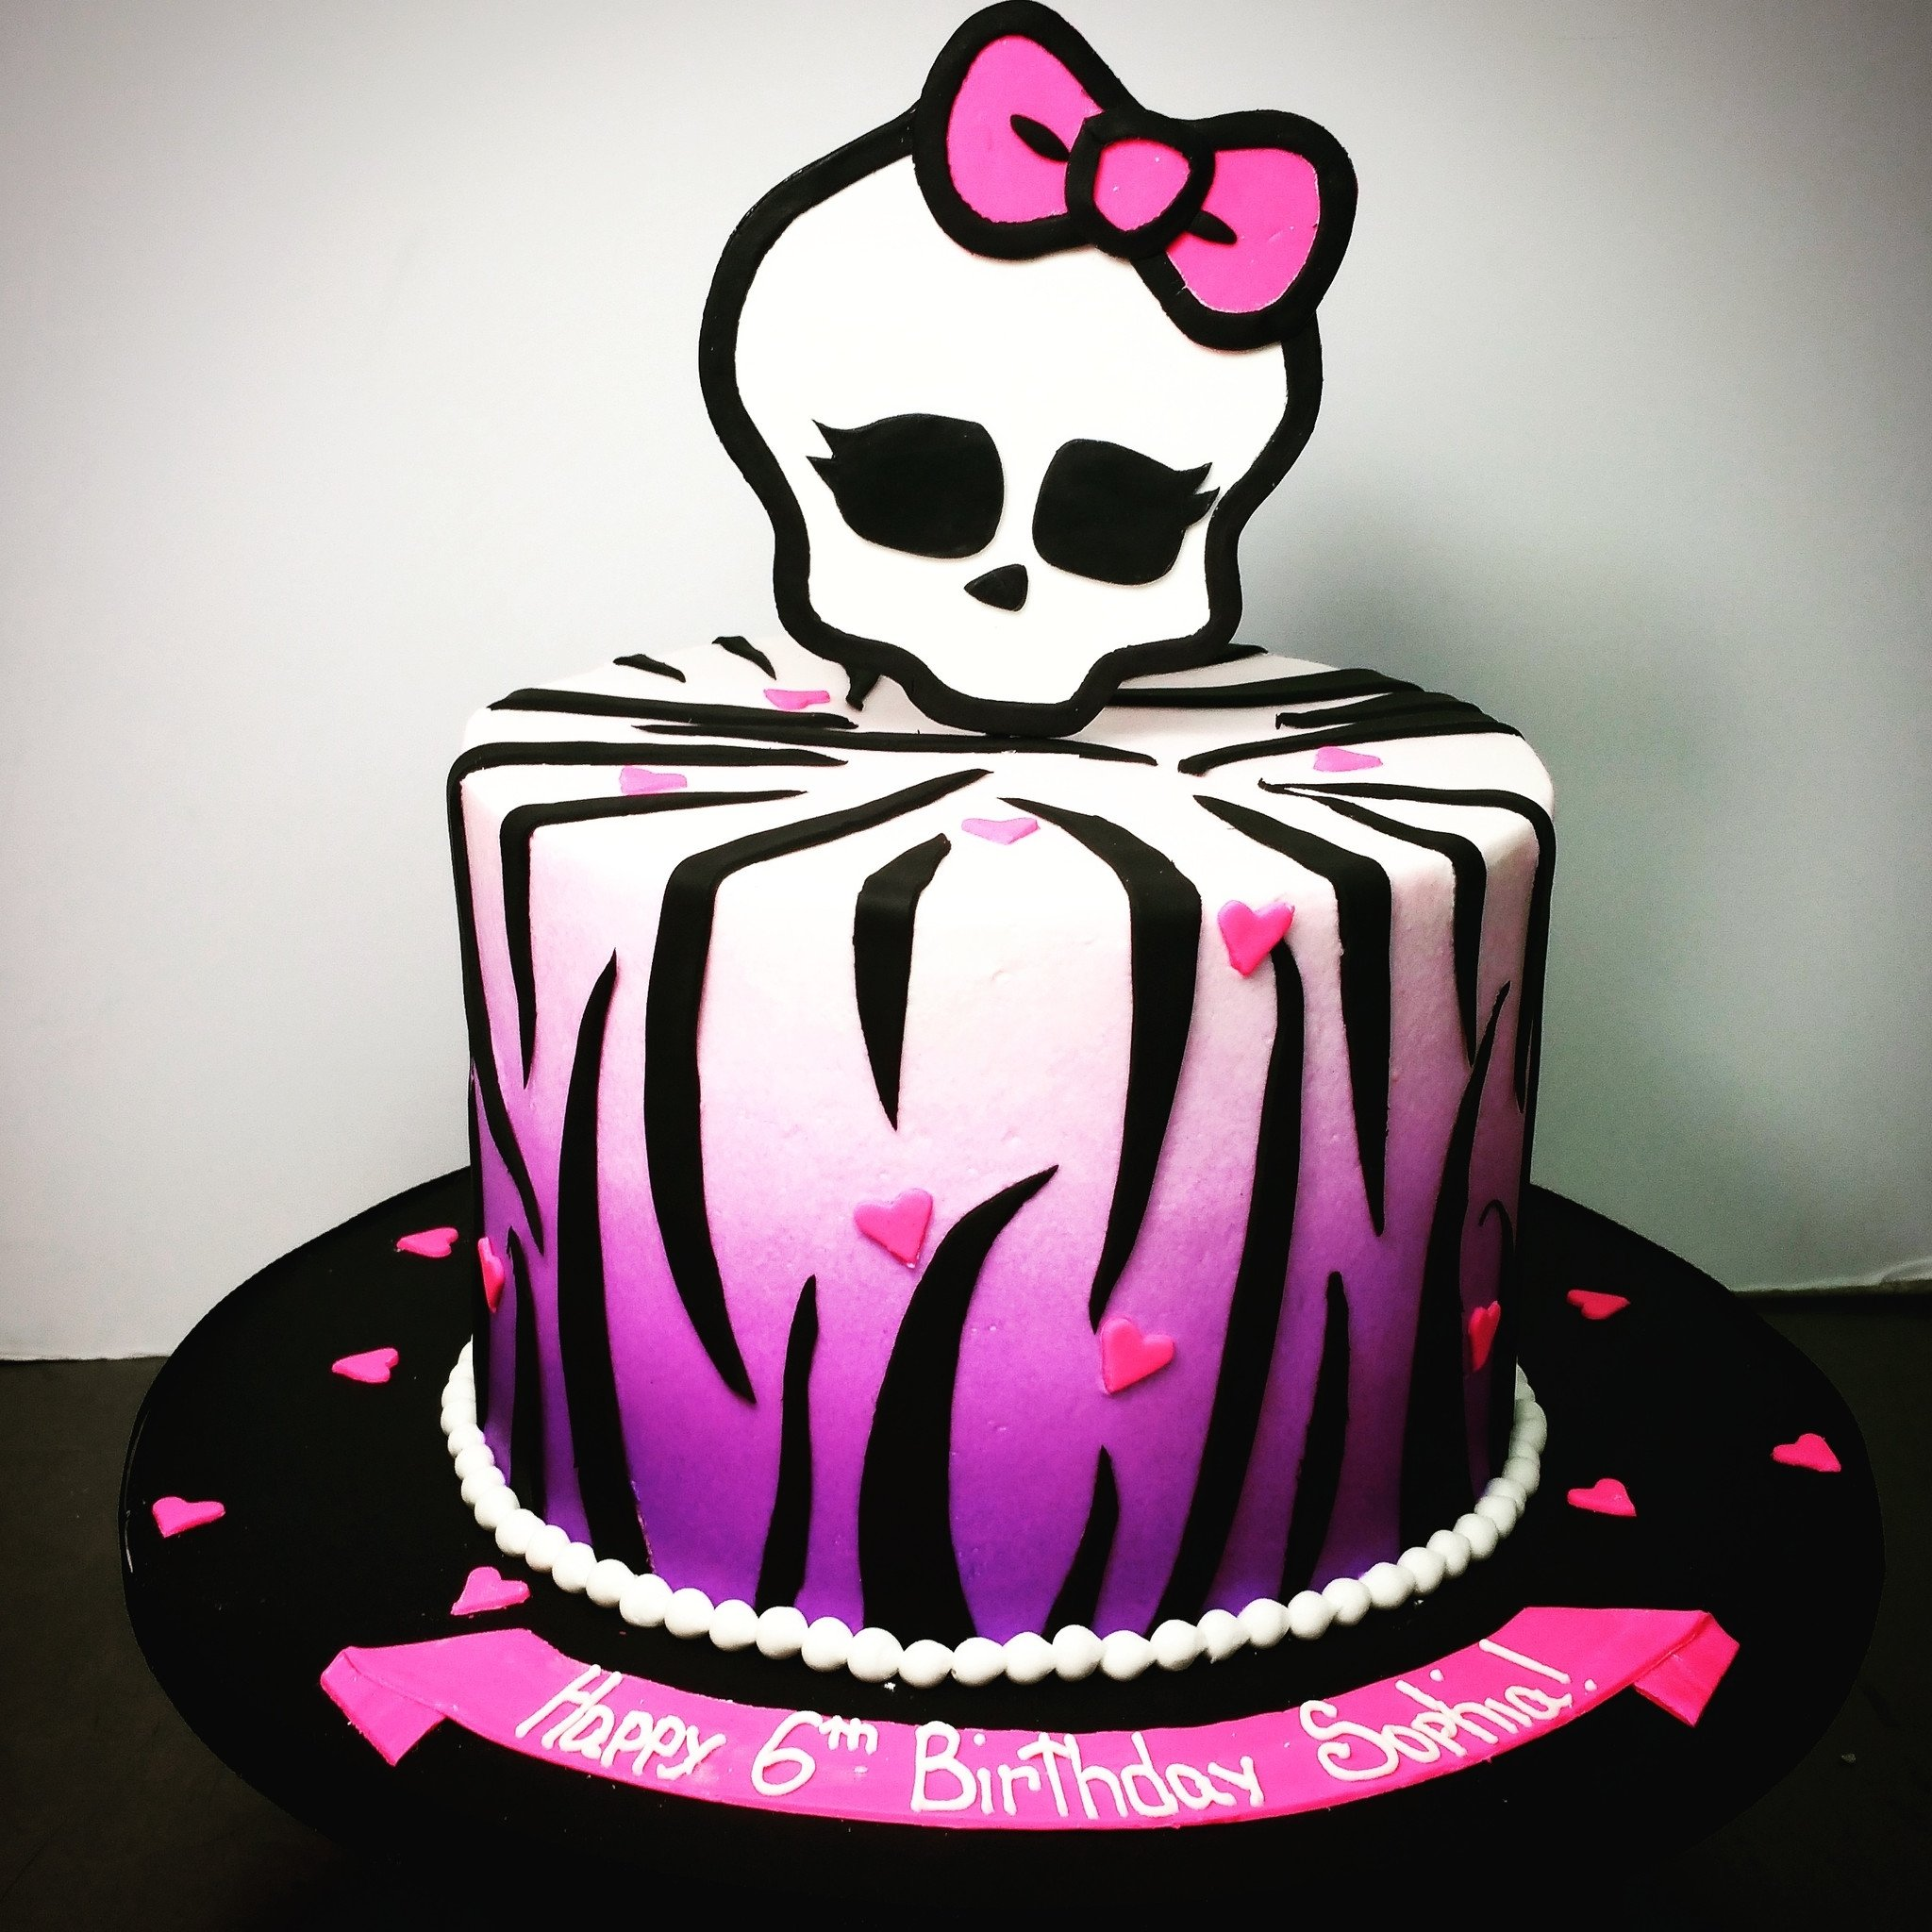 10 Lovable Monster High Birthday Cake Ideas buttercream monster high birthday cake pinteres 2020